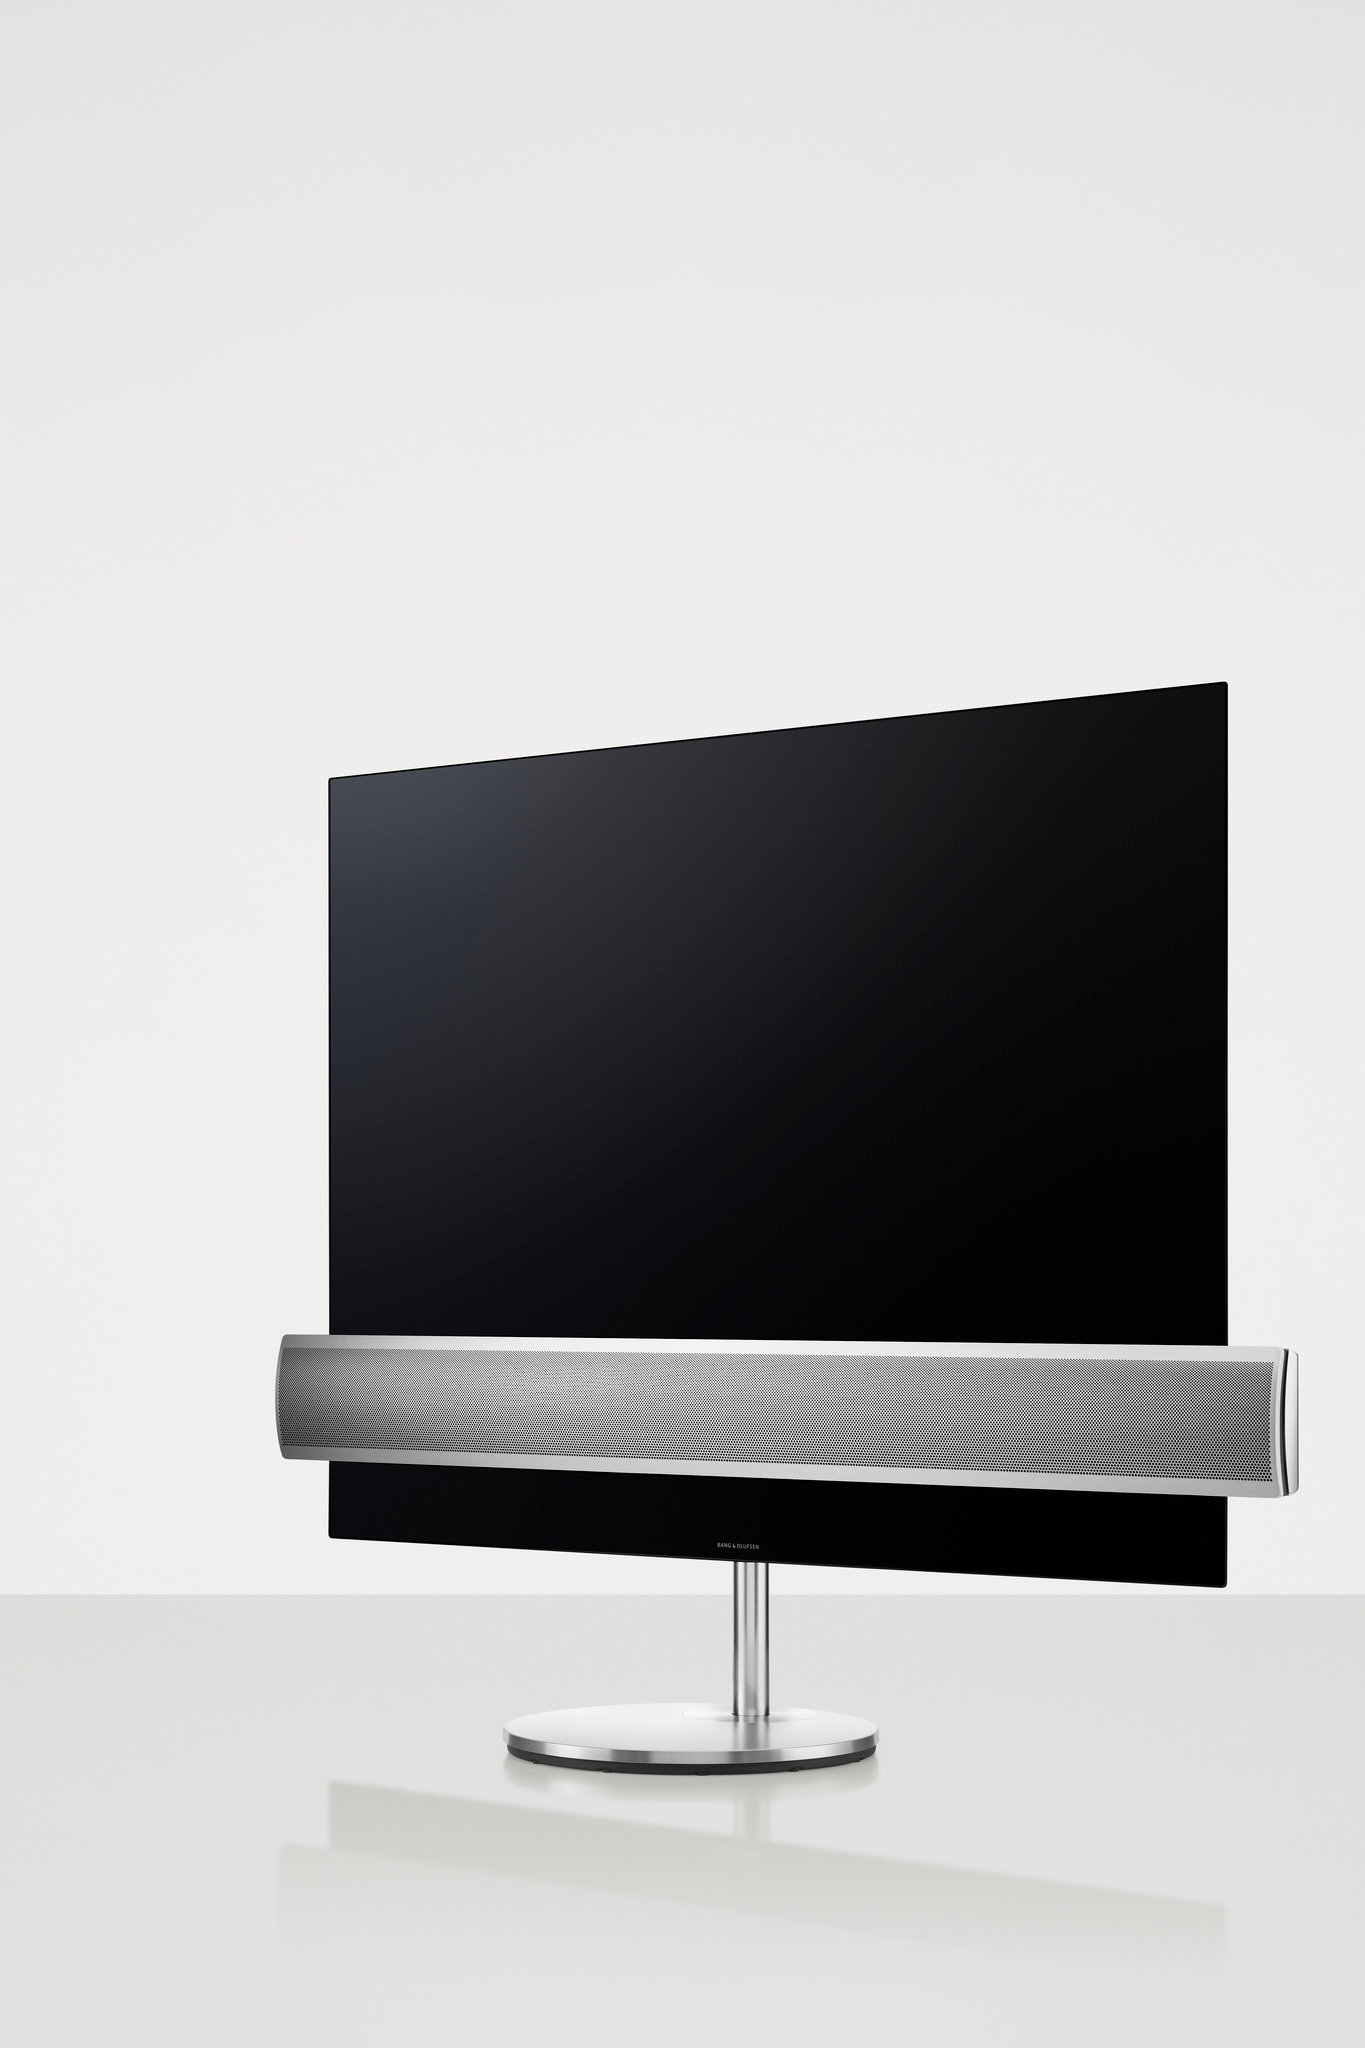 SELL YOUR B&O TELEVISION - TELL ME MORE ➝SELL NOW ➝